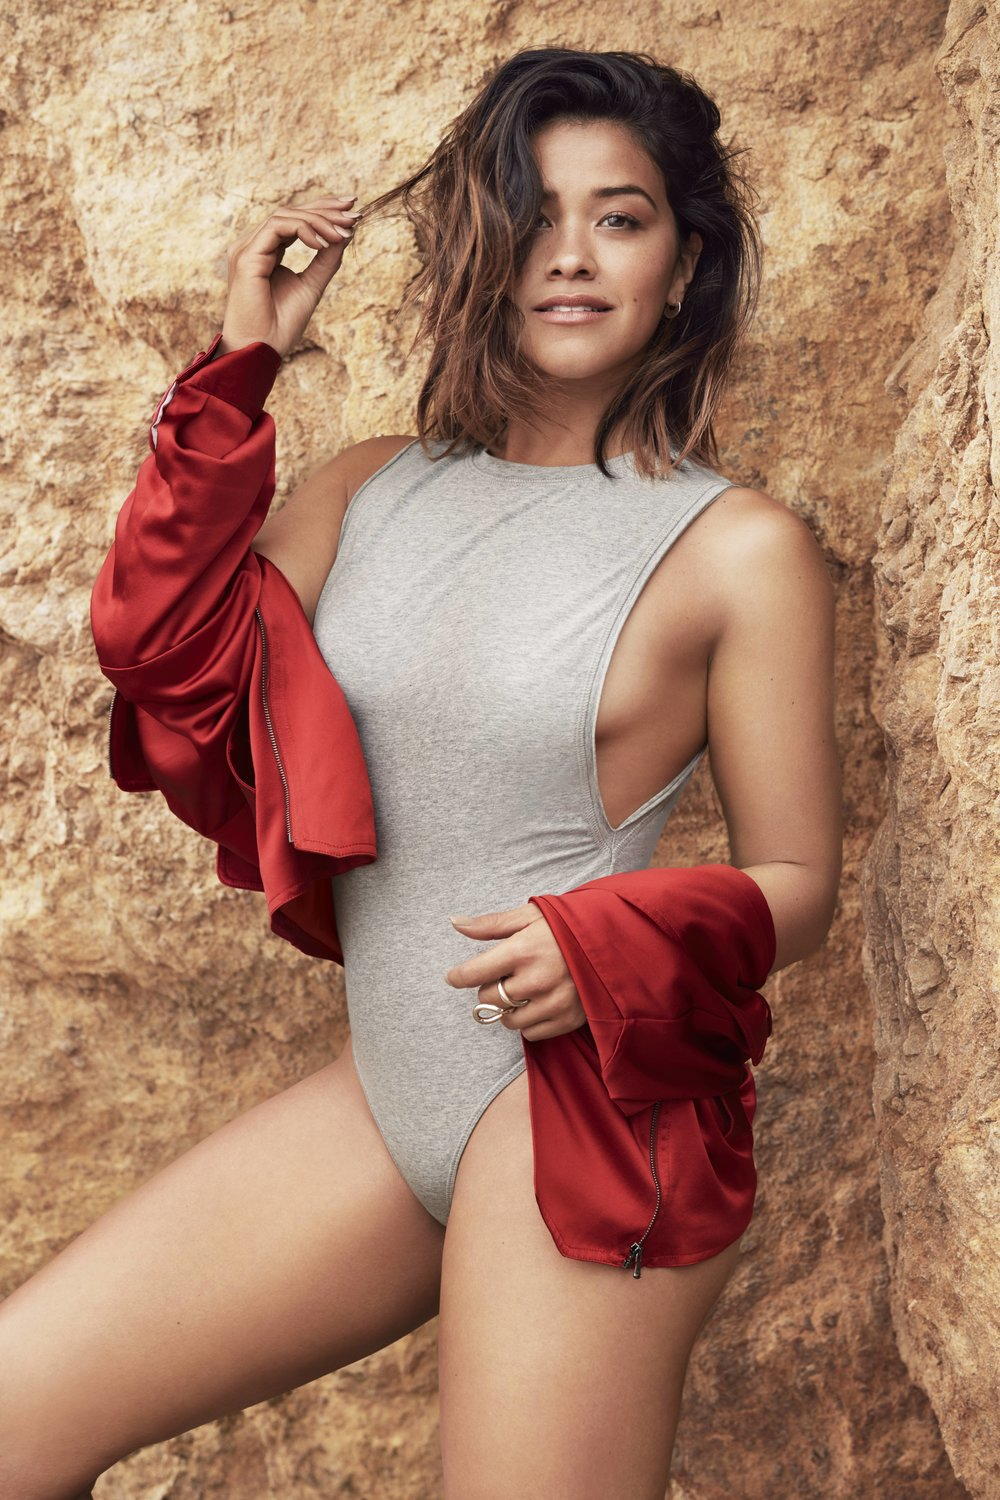 Boobs Swimsuit Gina Rodriguez  nudes (35 photos), Twitter, see through